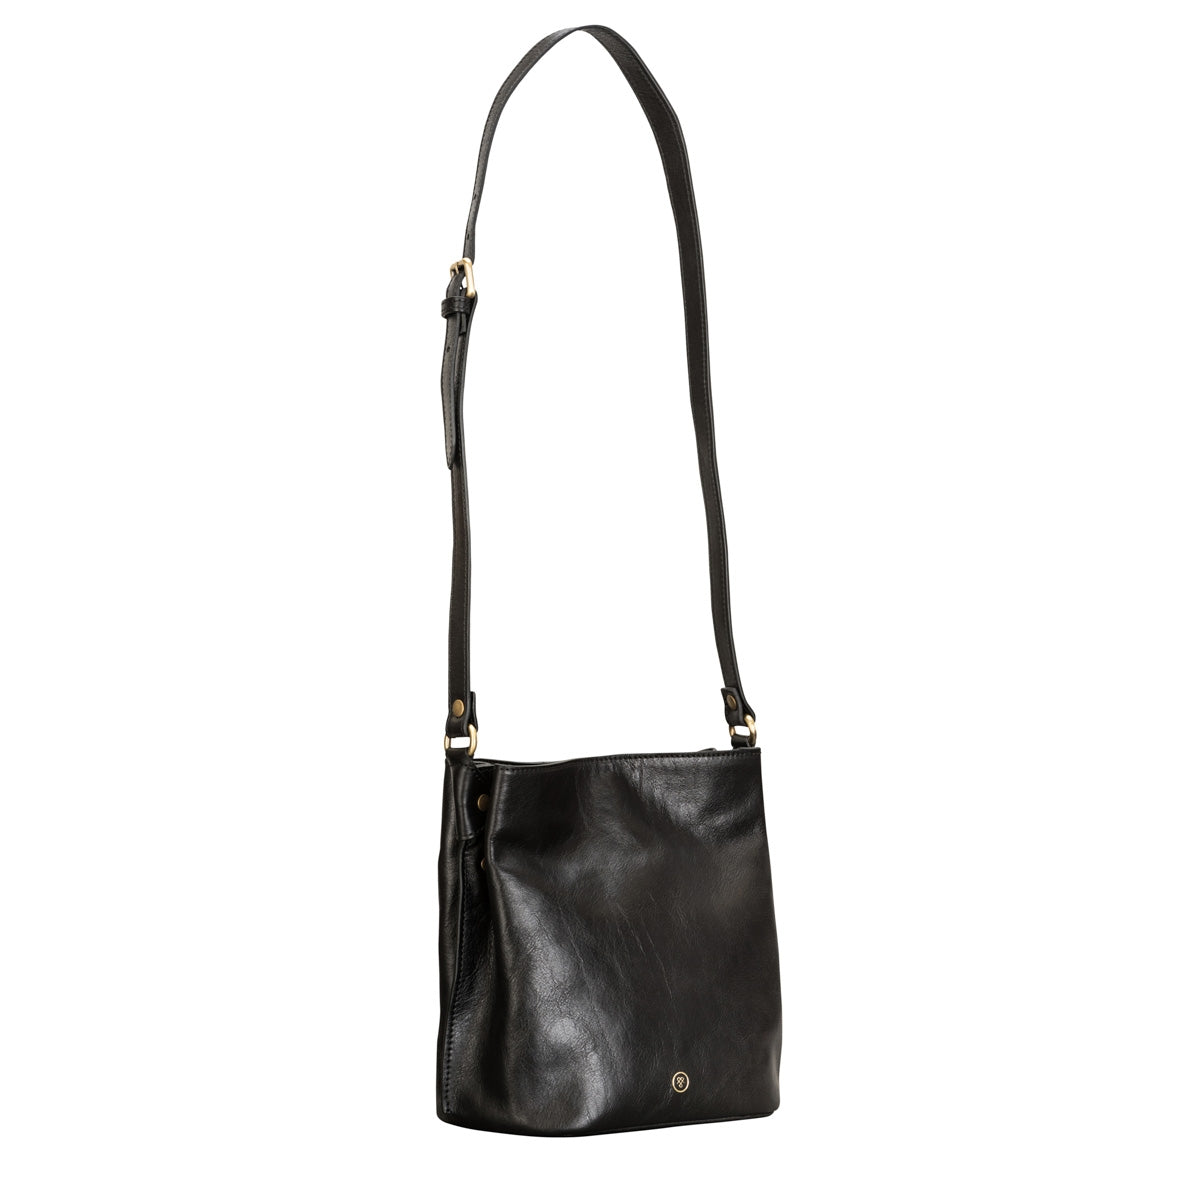 Image 2 of the 'Palermo' Handmade Black Veg-Tanned Leather Shoulder Bag